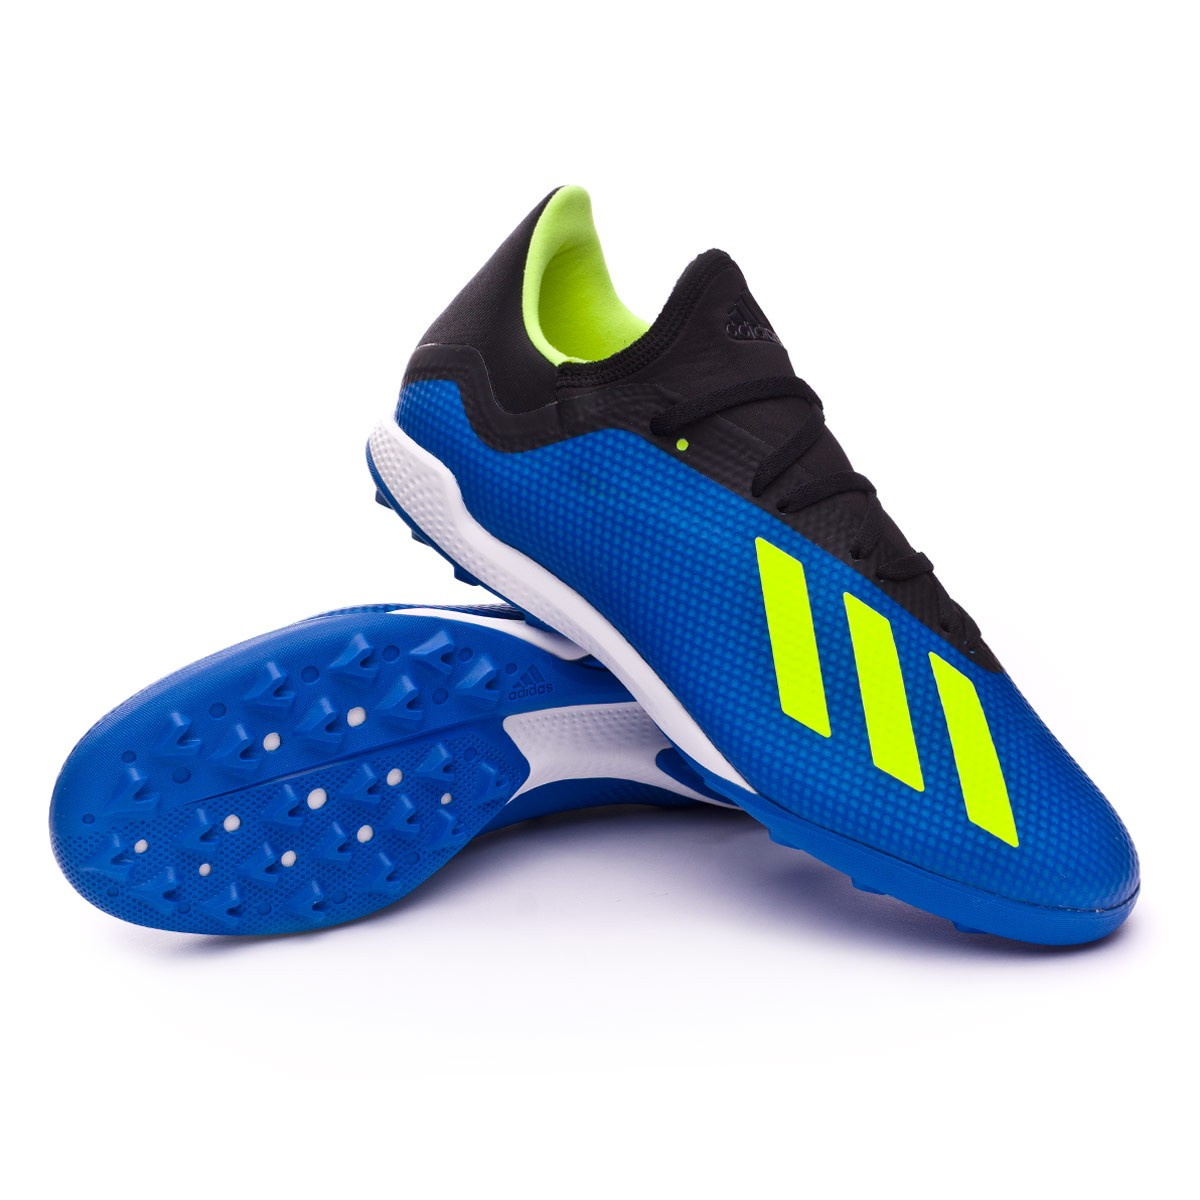 new arrival 8558e e4eba adidas X Tango 18.3 Turf Football Boot